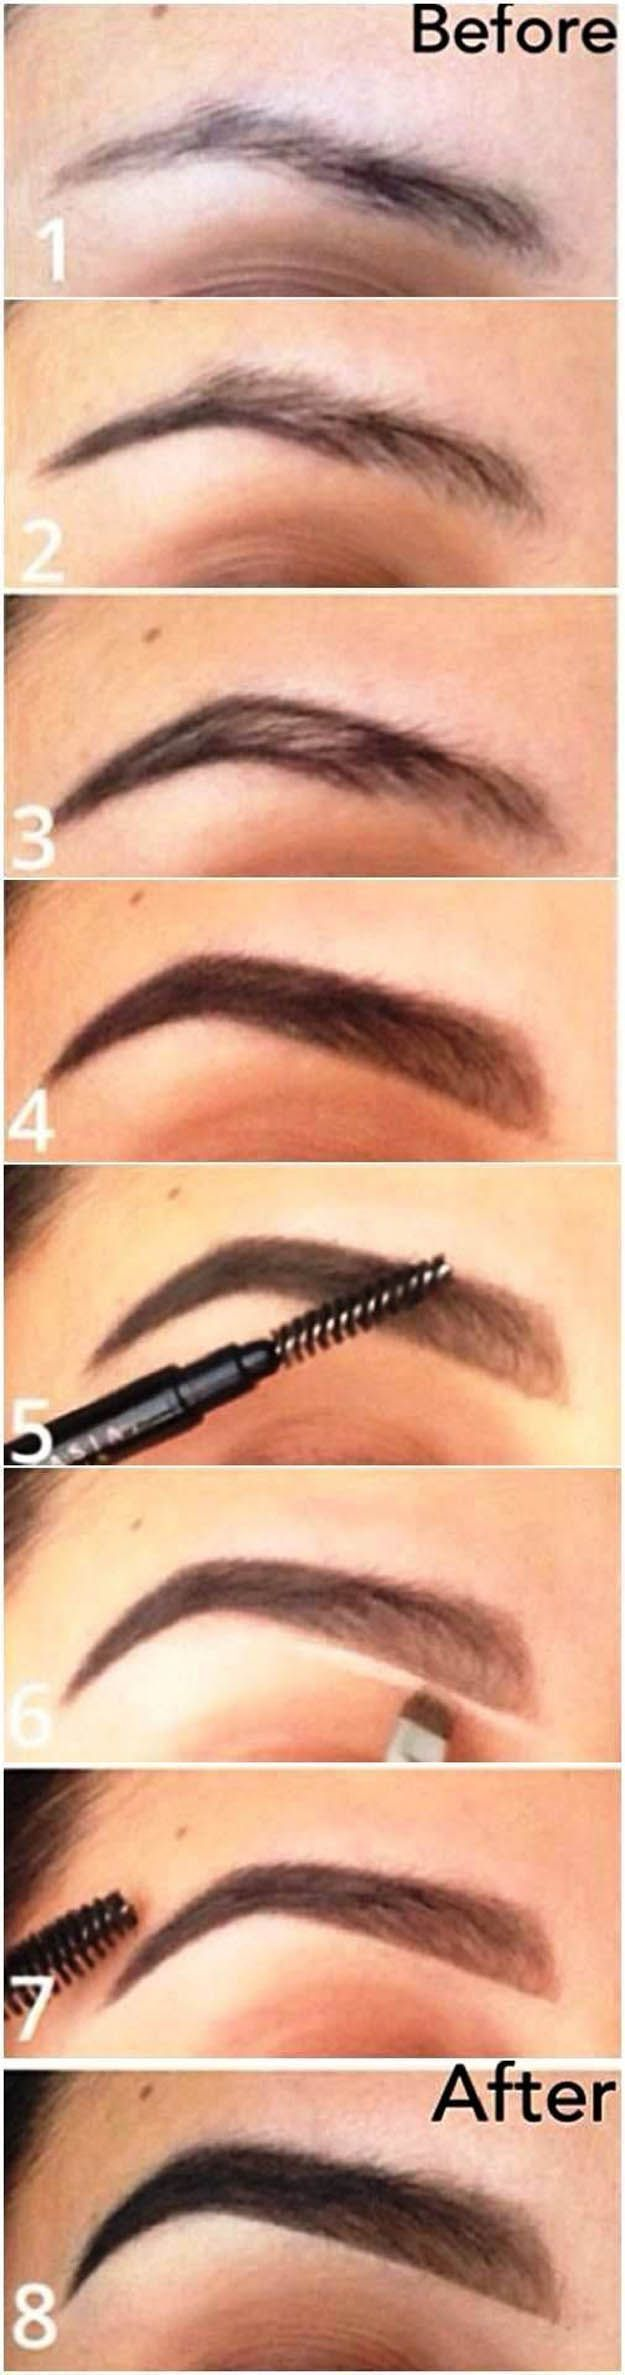 How to Fill in Your Brows | Eyebrow Makeup Tutorials for Beginners by Makeup Tutorials at makeuptutorials.c...